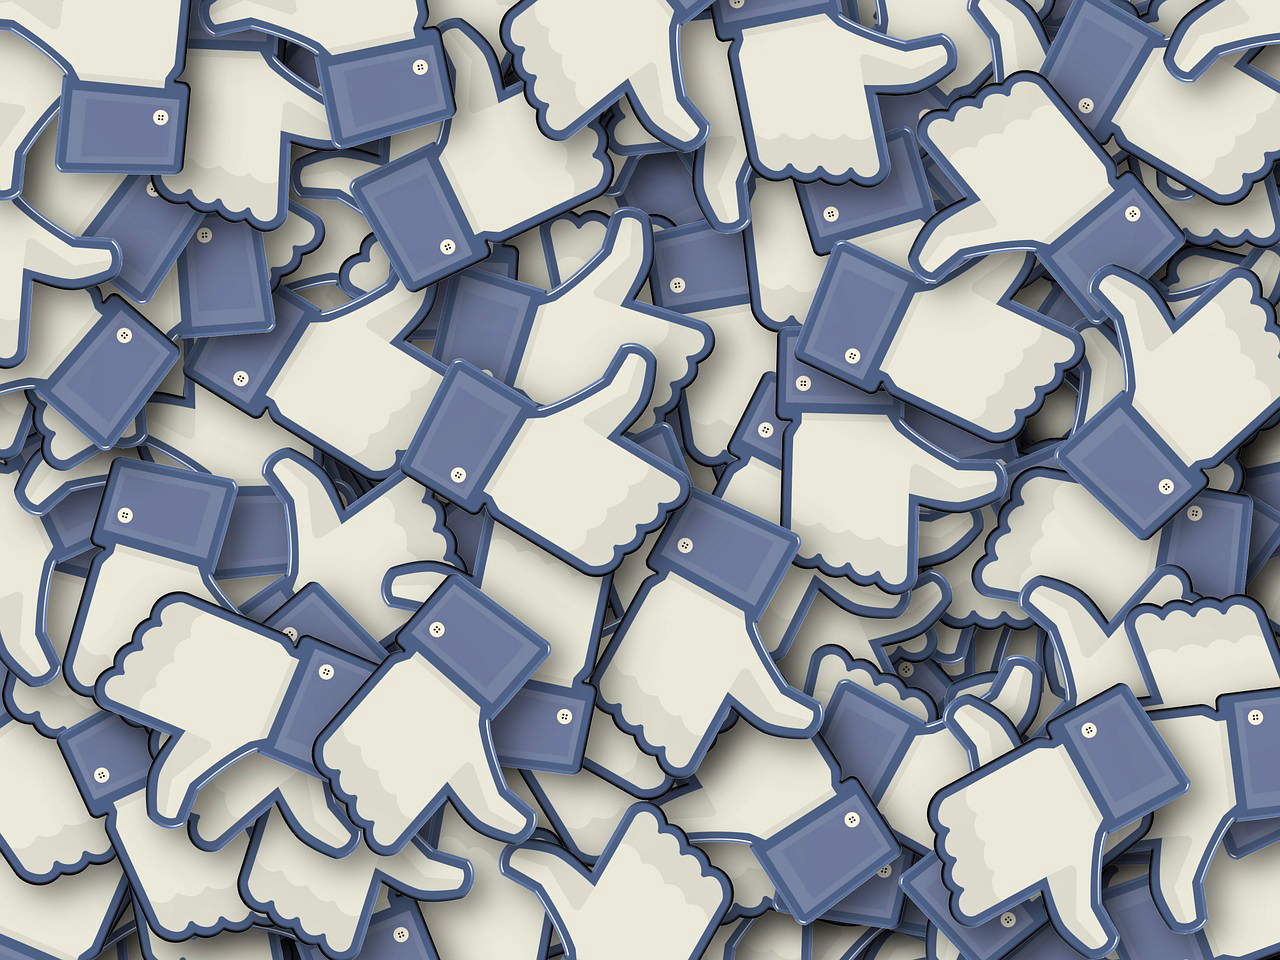 New Privacy Tool on Facebook Shows How You Are Being Watched Online